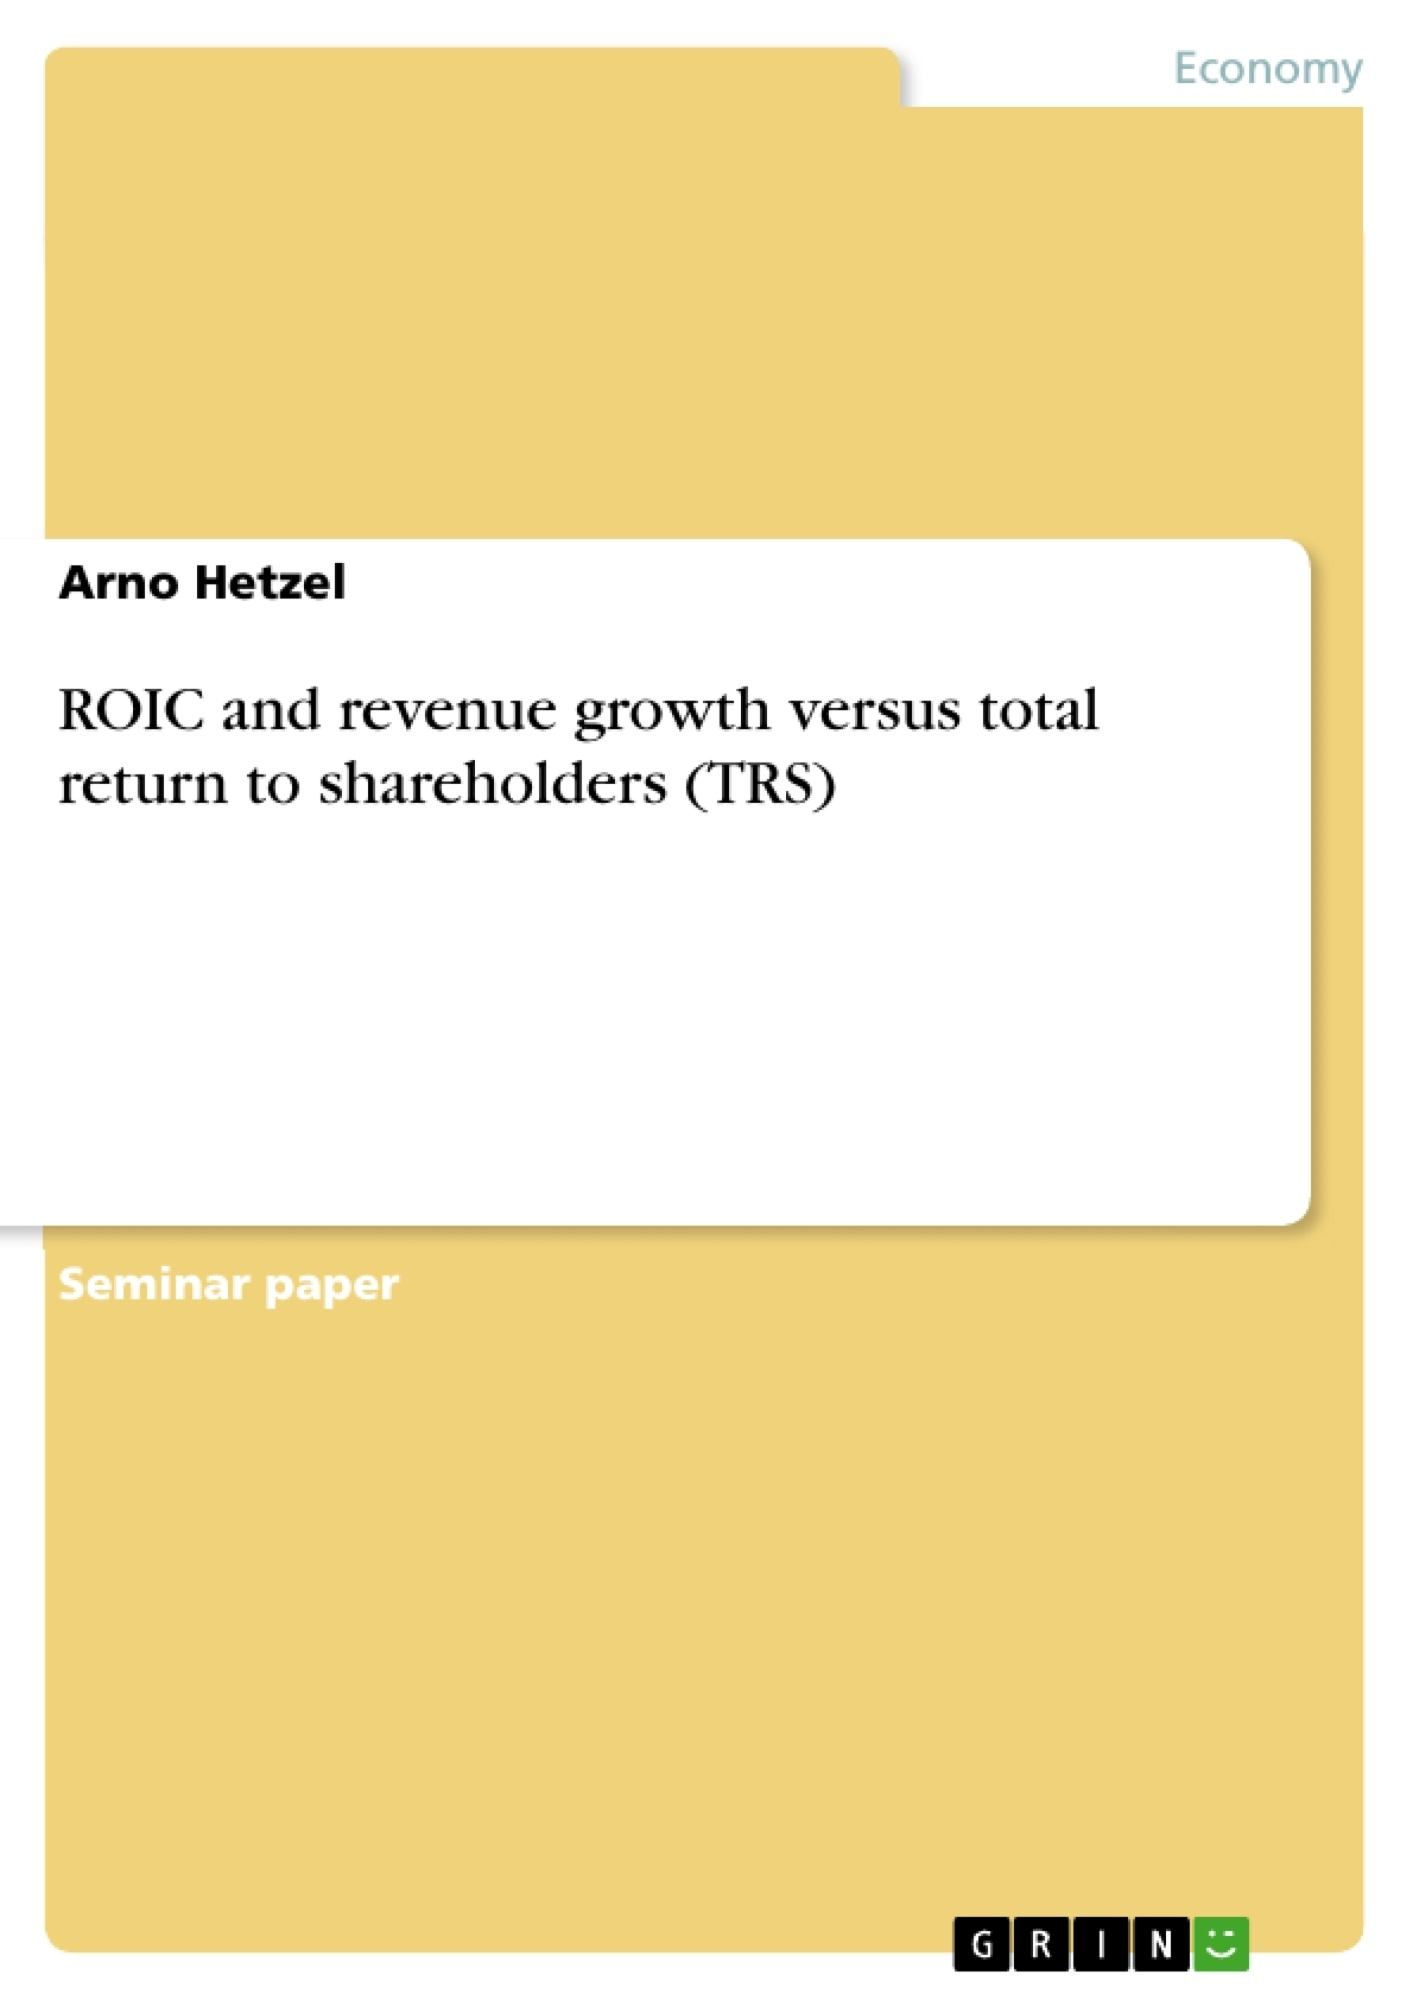 Title: ROIC and revenue growth versus total return to shareholders (TRS)